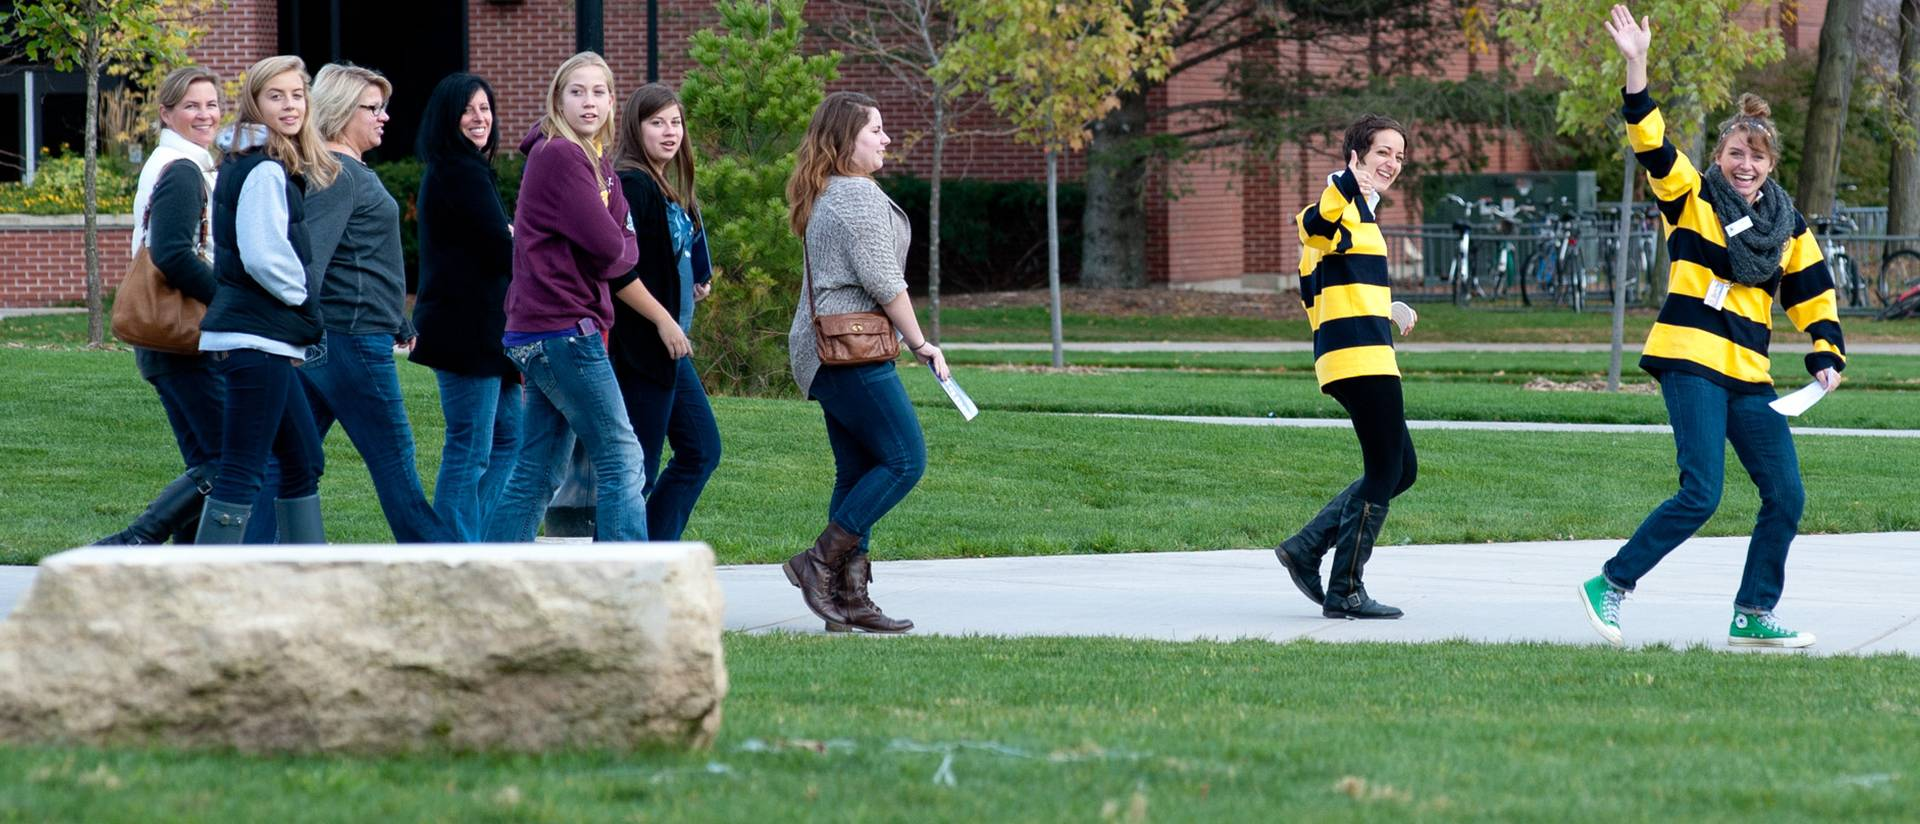 UWEC campus tour guides leading group